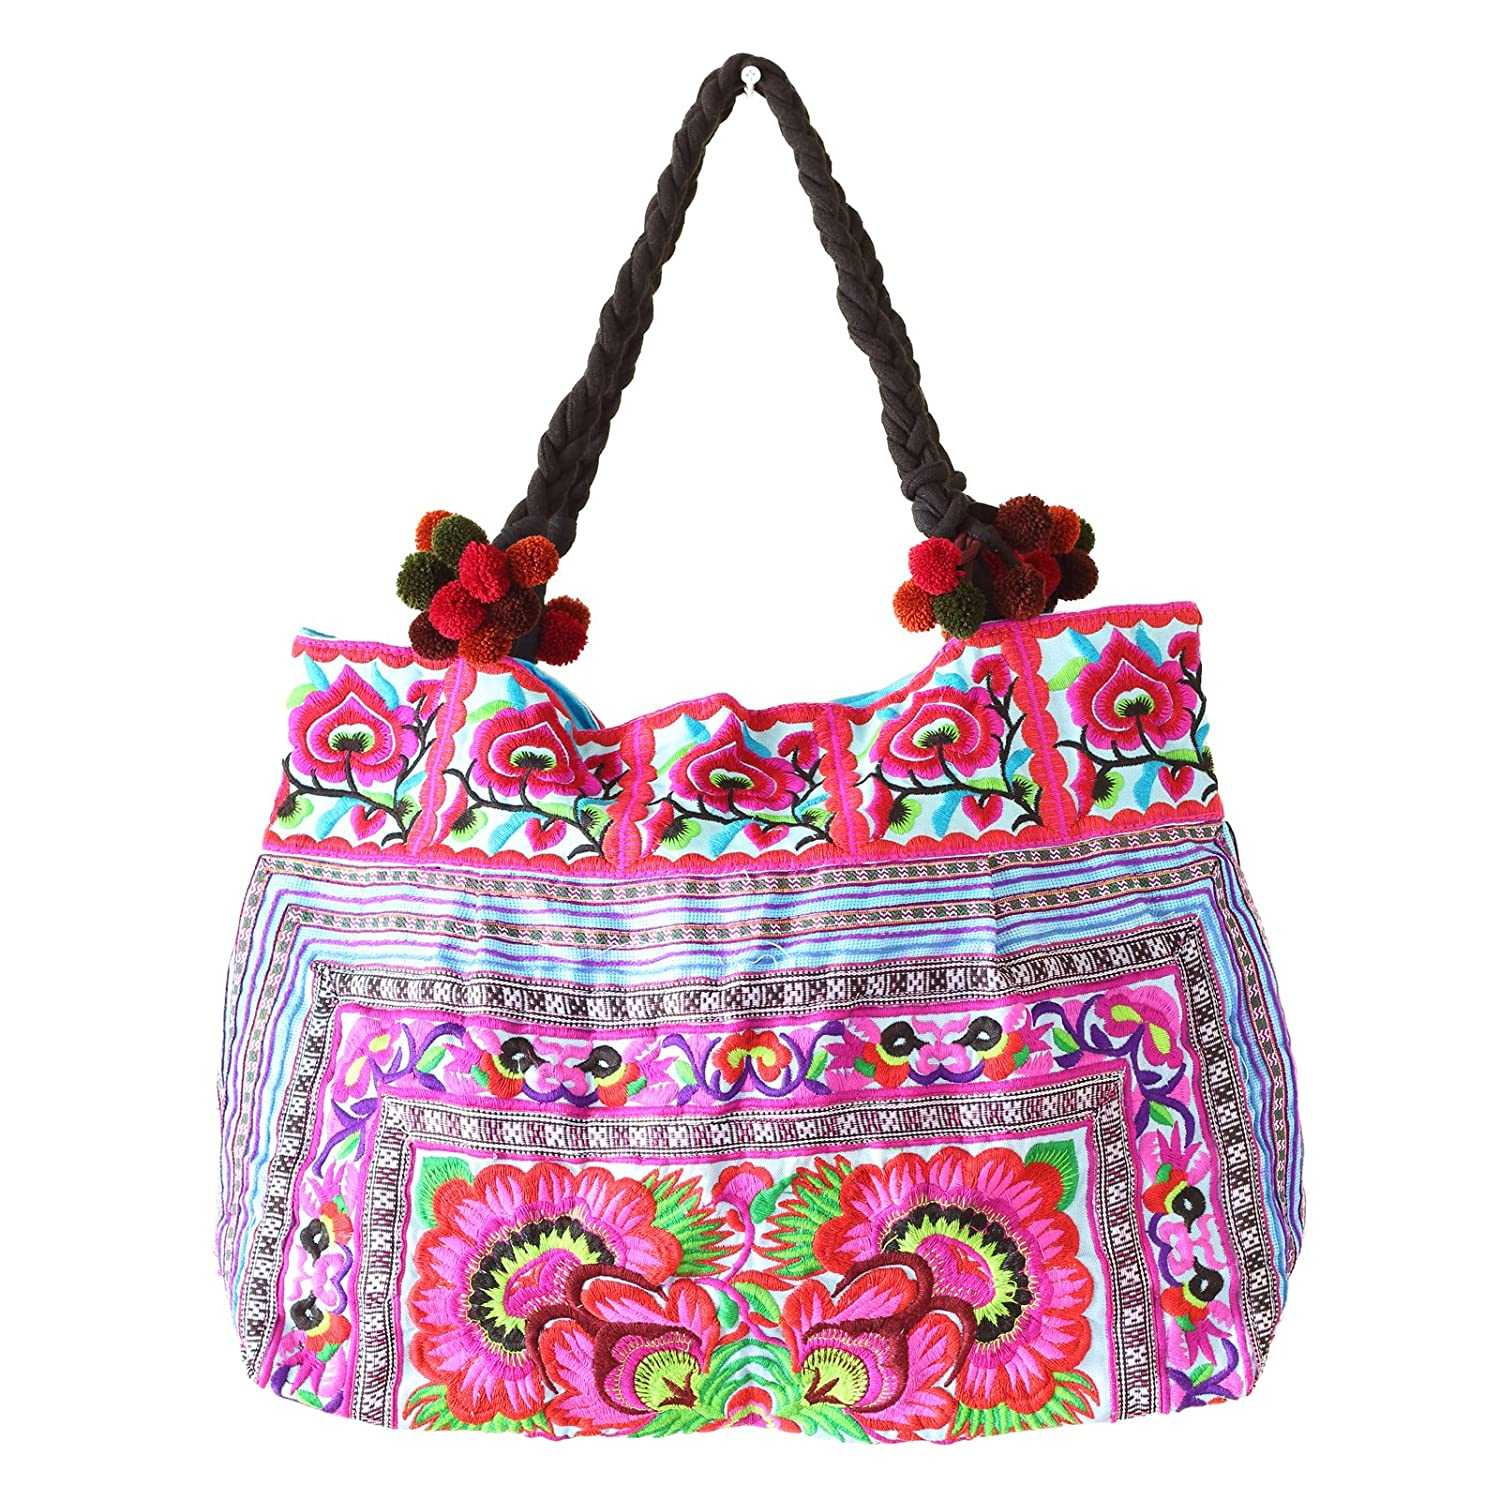 Changnoi Blue Rose Hill Tribe Tote Bag Large Size Made By The Hmong Bags Thai Fair Trade